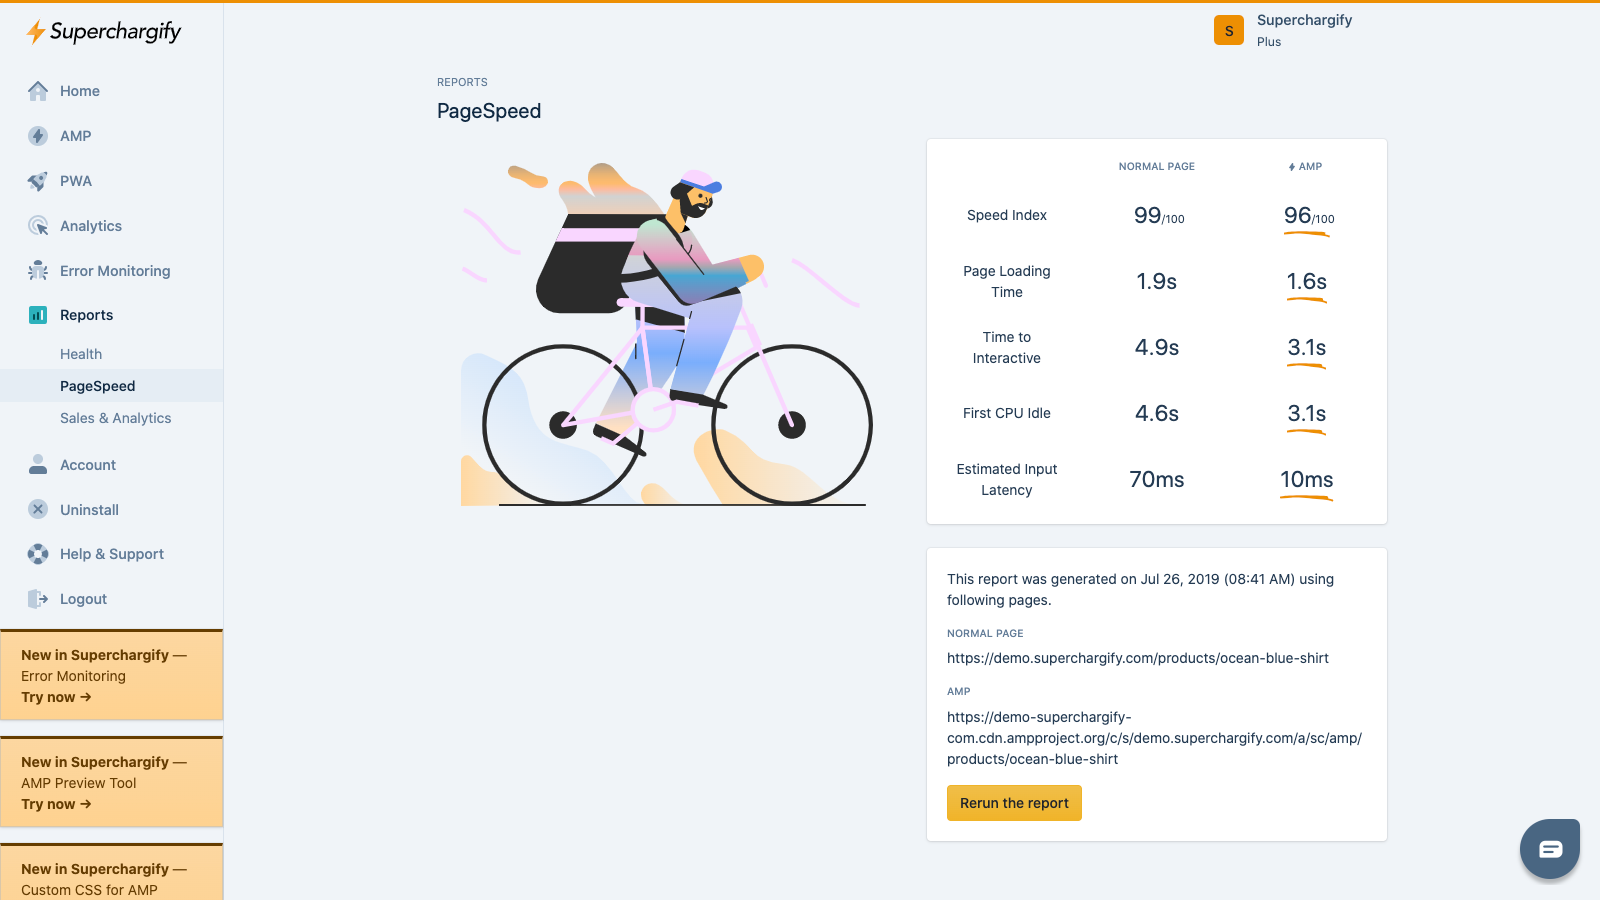 Superchargify: PageSpeed report